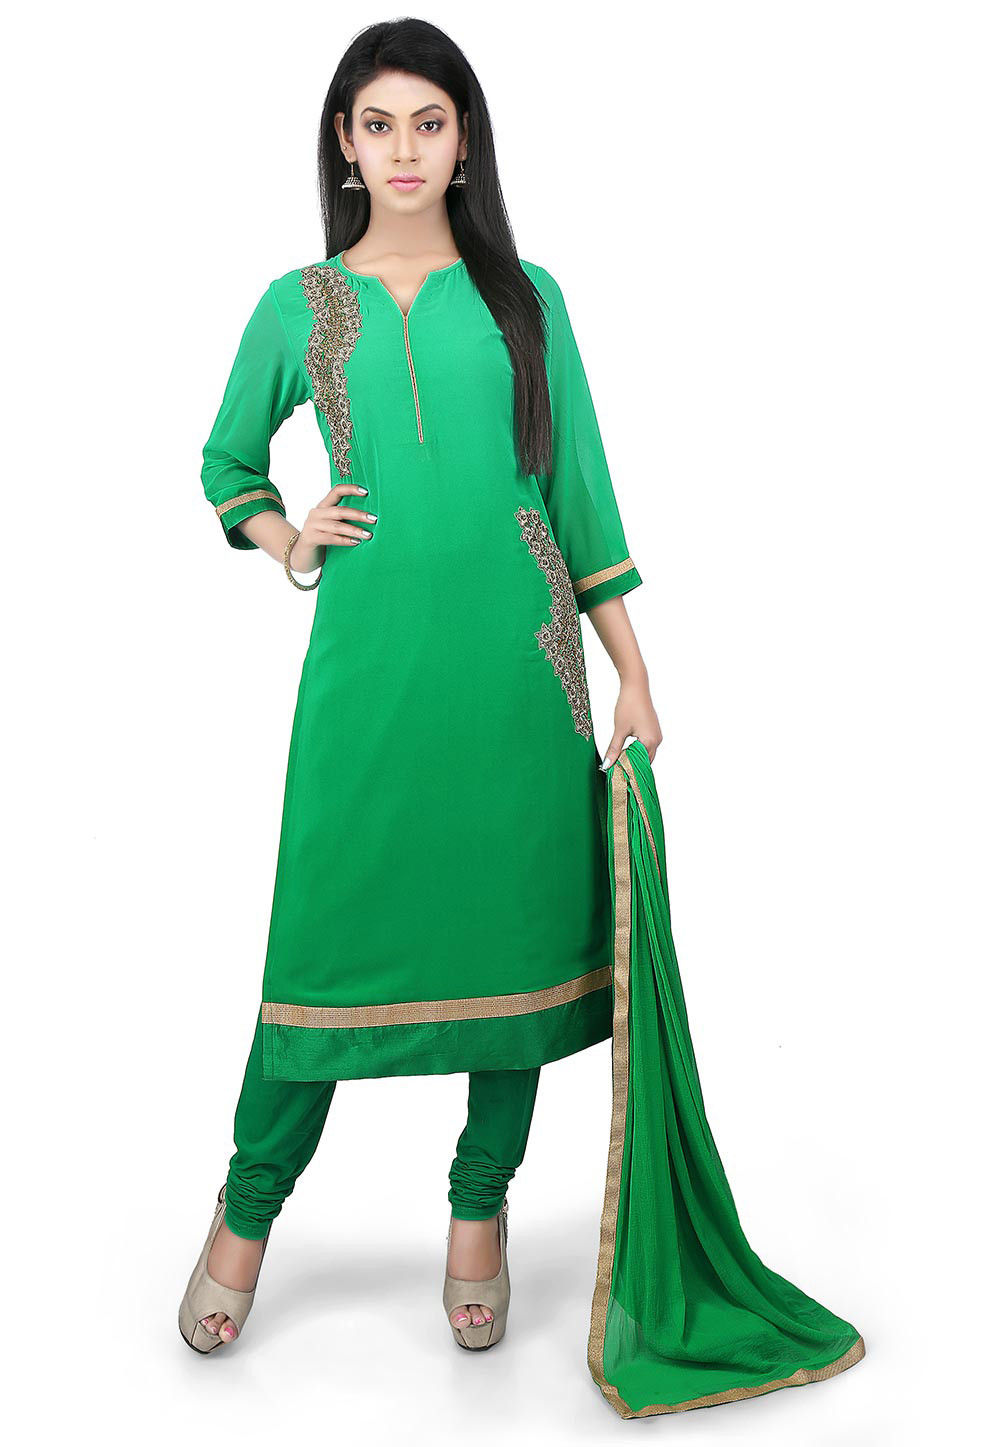 Hand Embroidered Georgette Straight Suit in Green Ombre